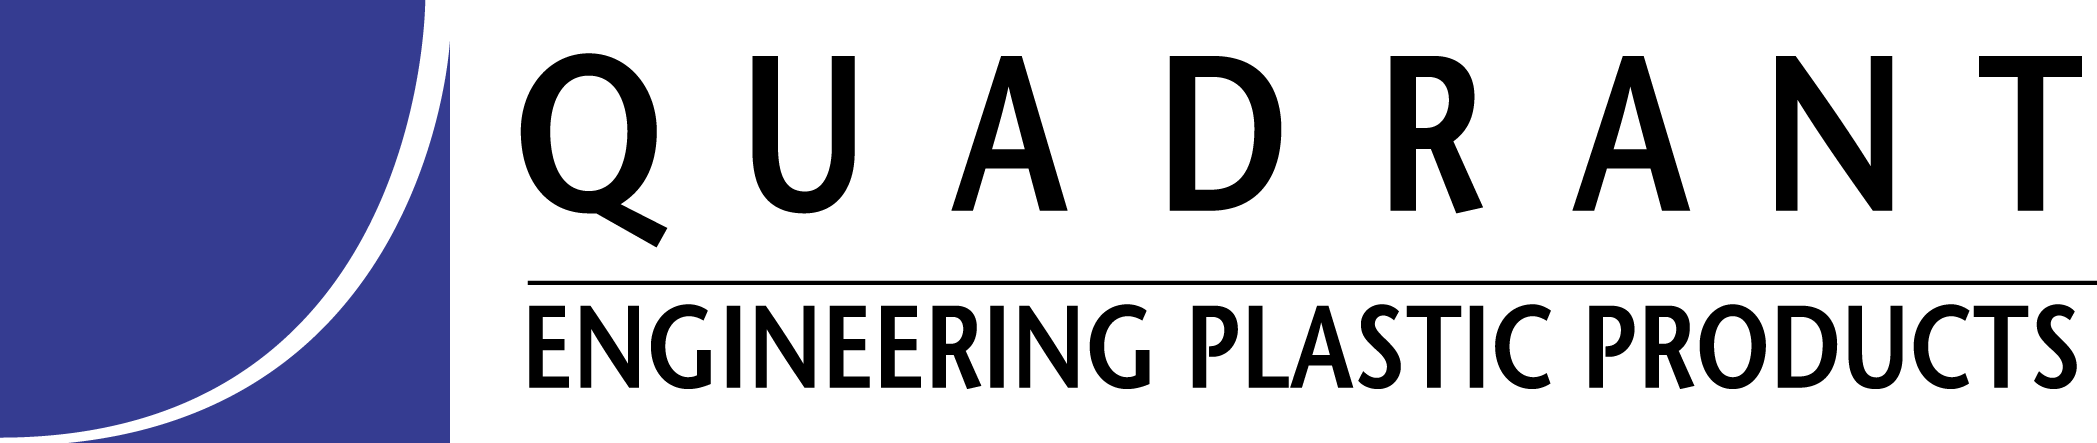 Quadrant Engineering Plastic Products